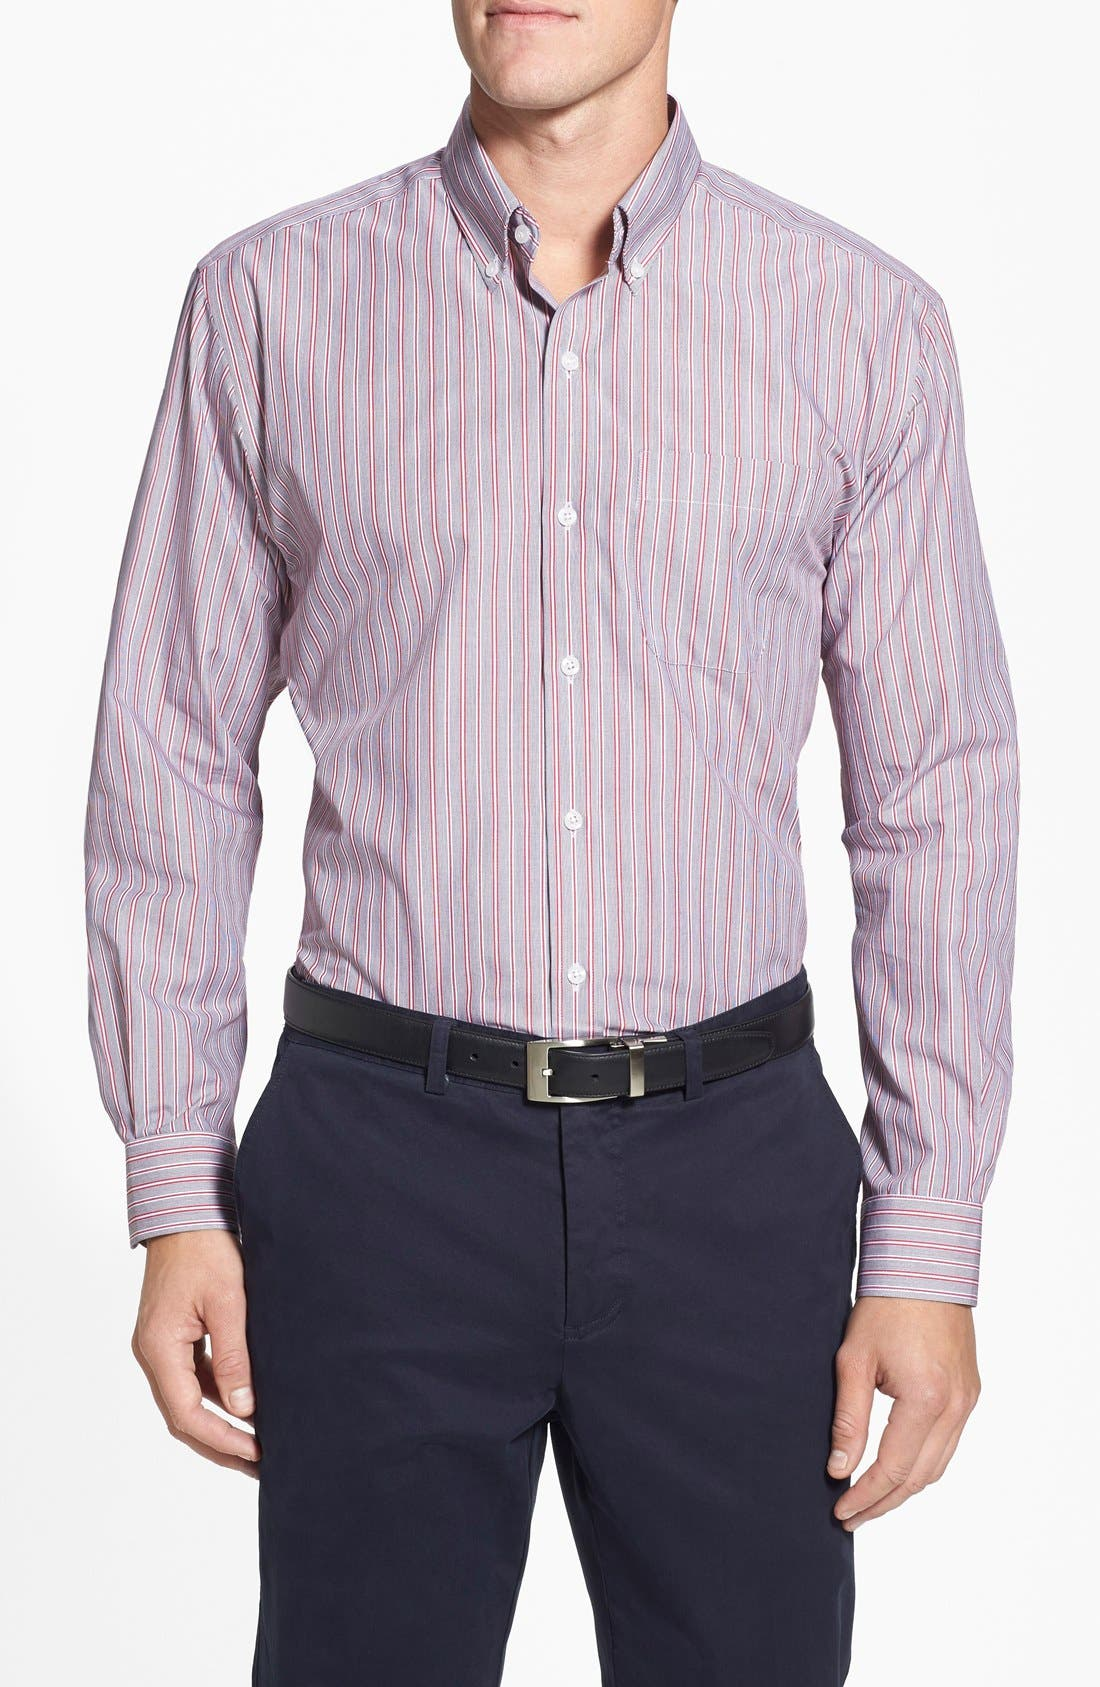 Cutter & Buck 'Epic Easy Care' Classic Fit Wrinkle Resistant Stripe Sport Shirt